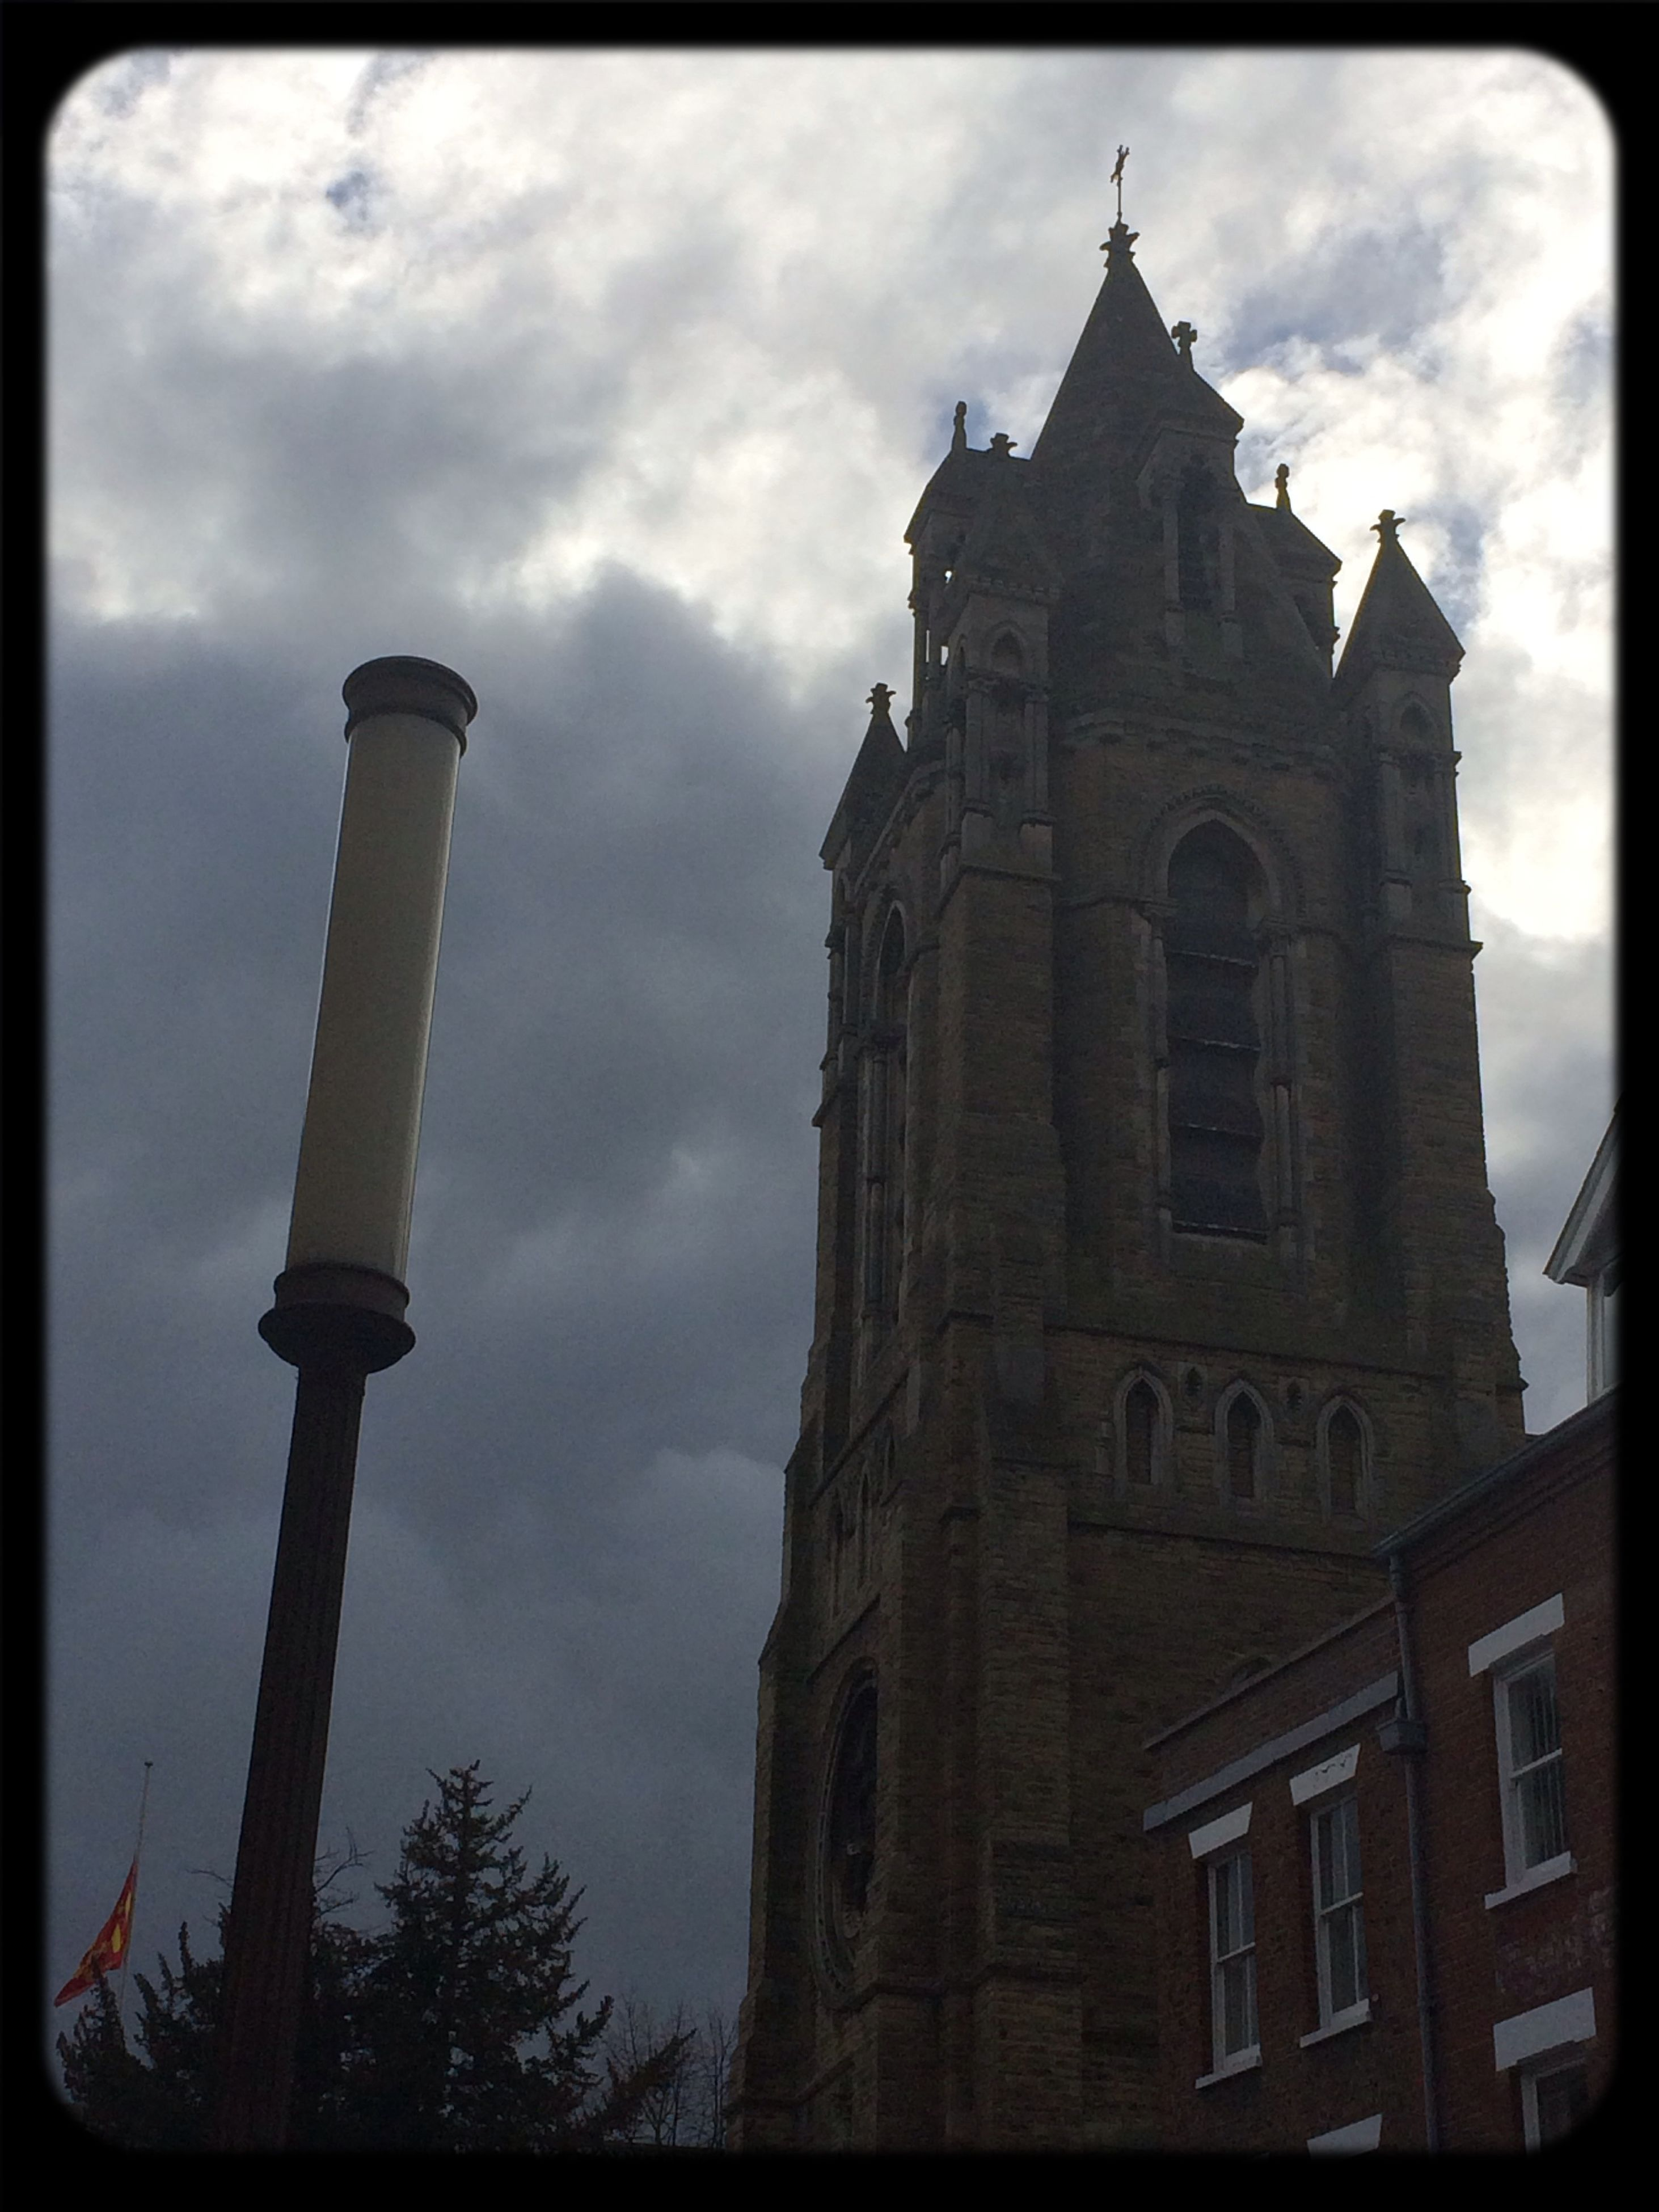 architecture, building exterior, built structure, low angle view, transfer print, sky, auto post production filter, religion, cloud - sky, tower, clock tower, church, history, cloudy, cloud, place of worship, spirituality, old